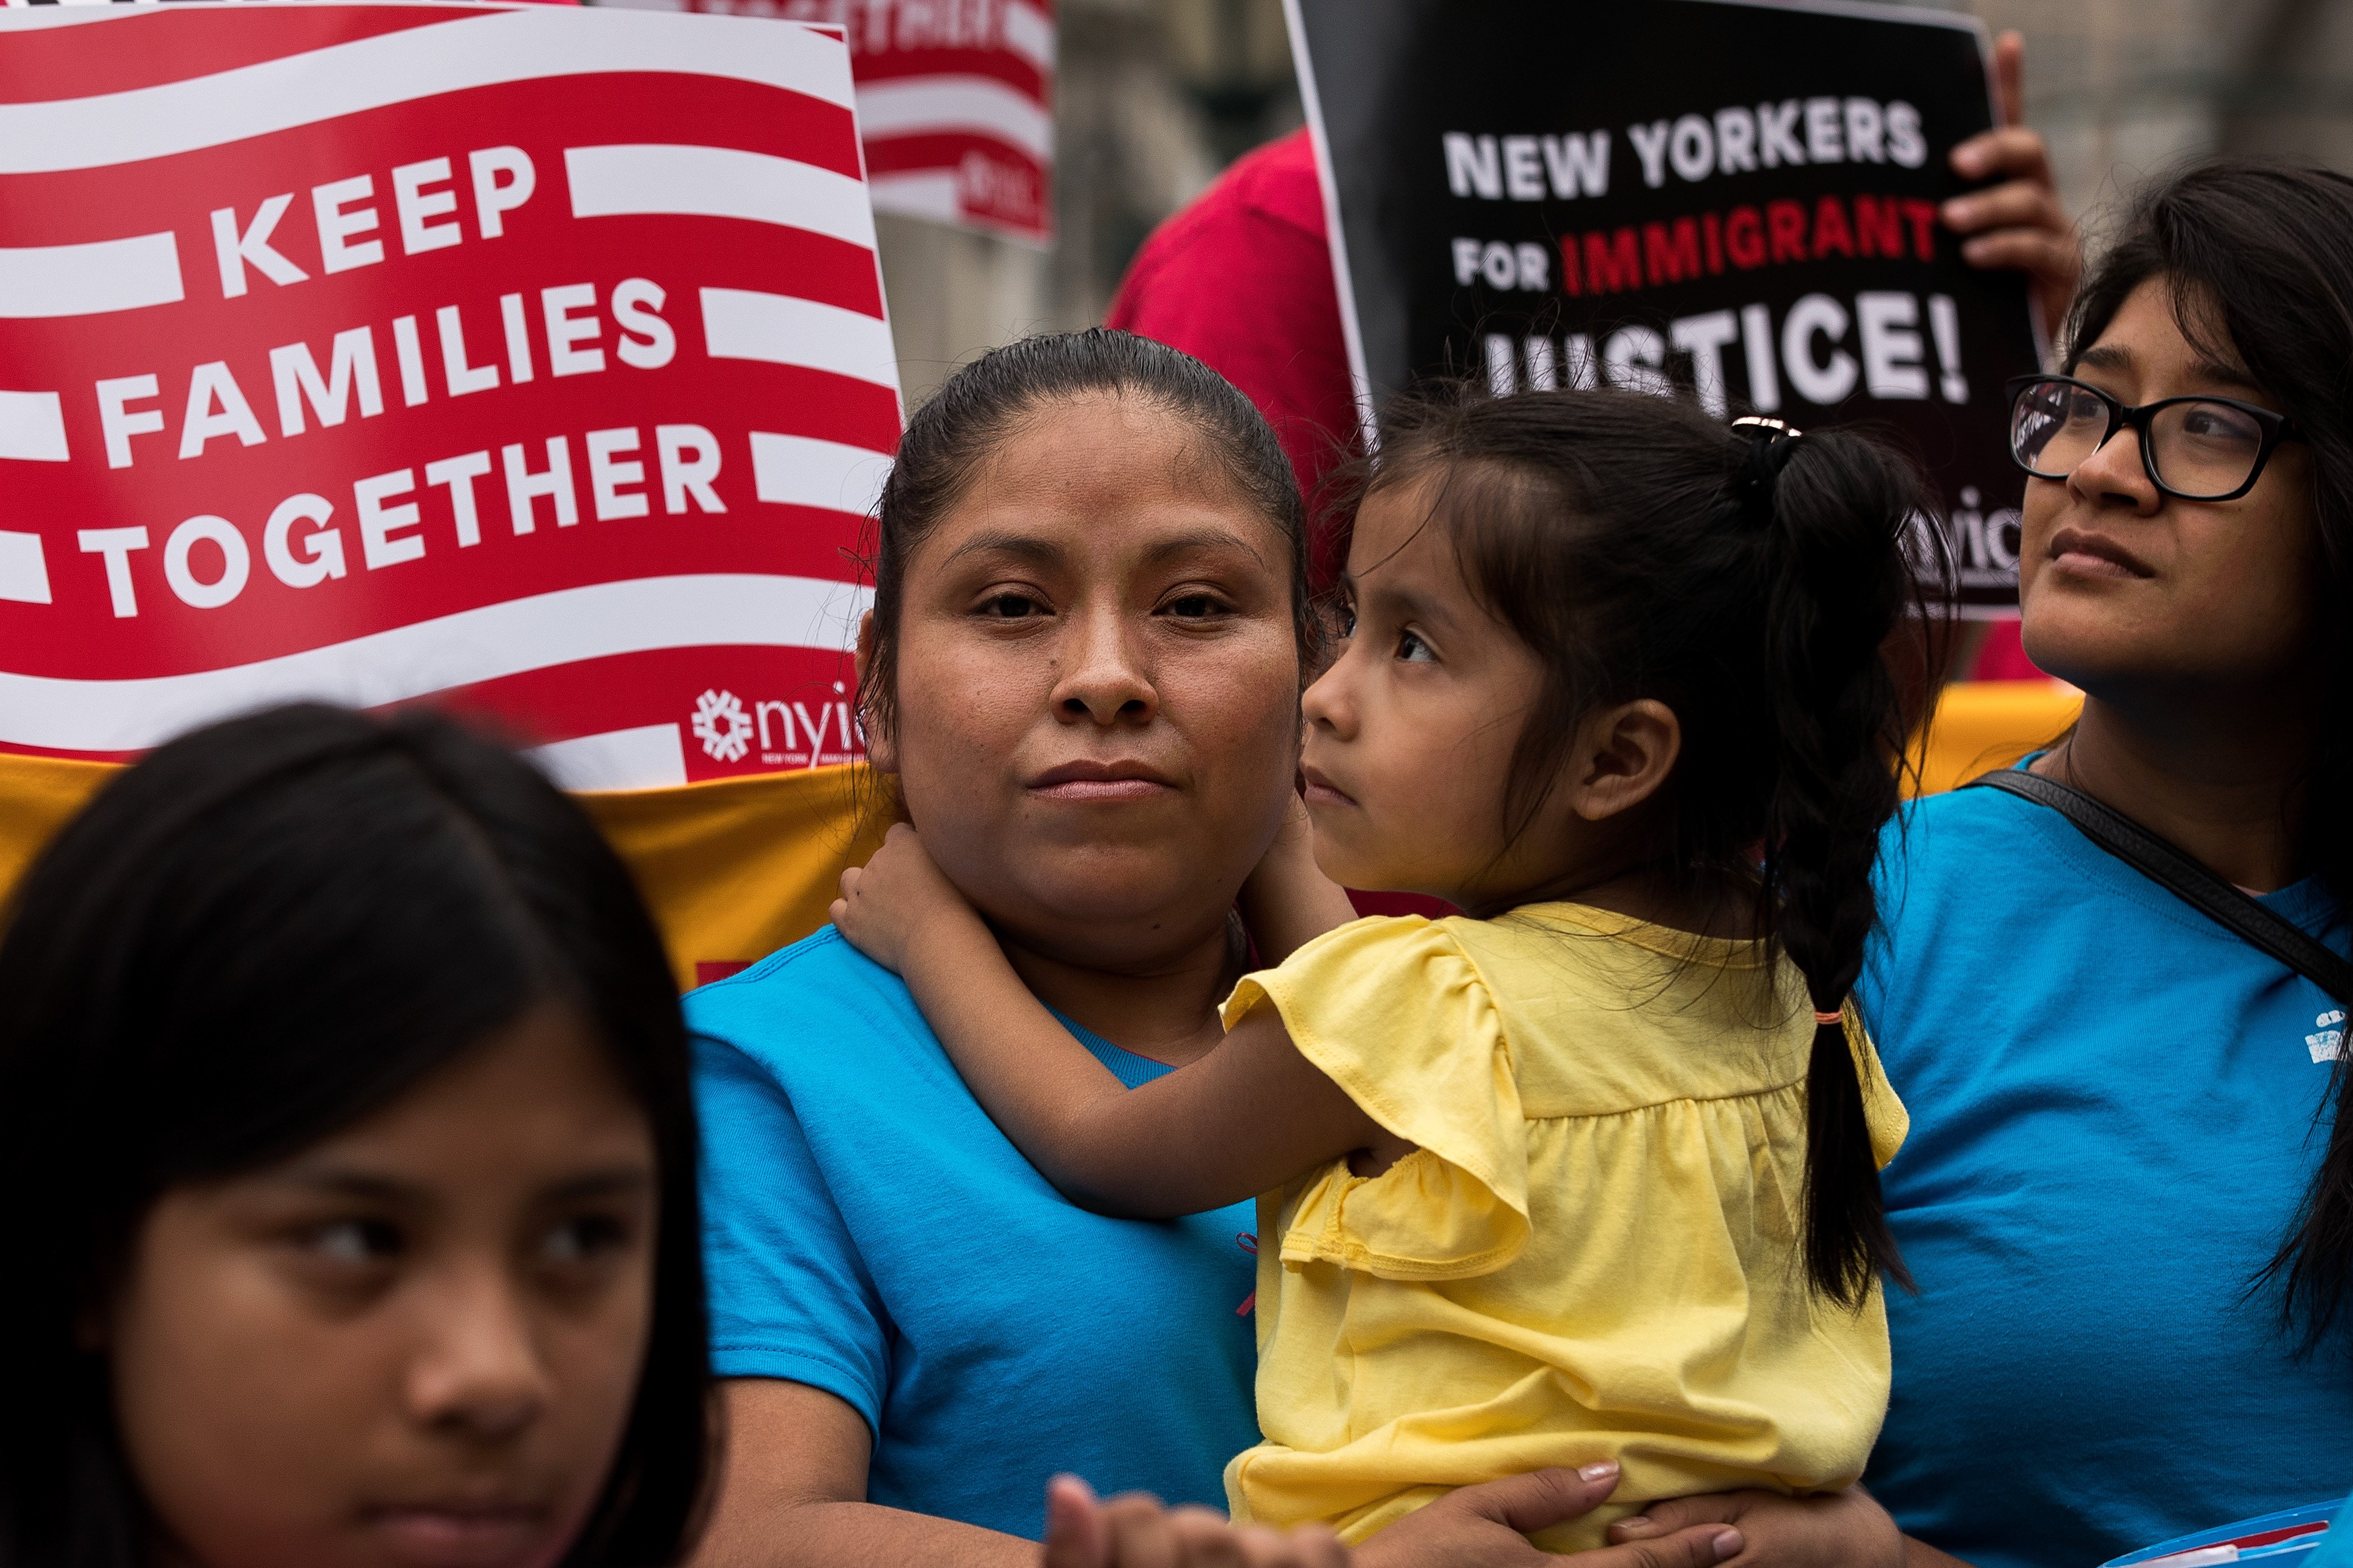 Mexican immigrant Nieves Ojendiz holds her 4-year old daughter Jane as she attends an immigration reform rally in New York City, on June 28, 2016.